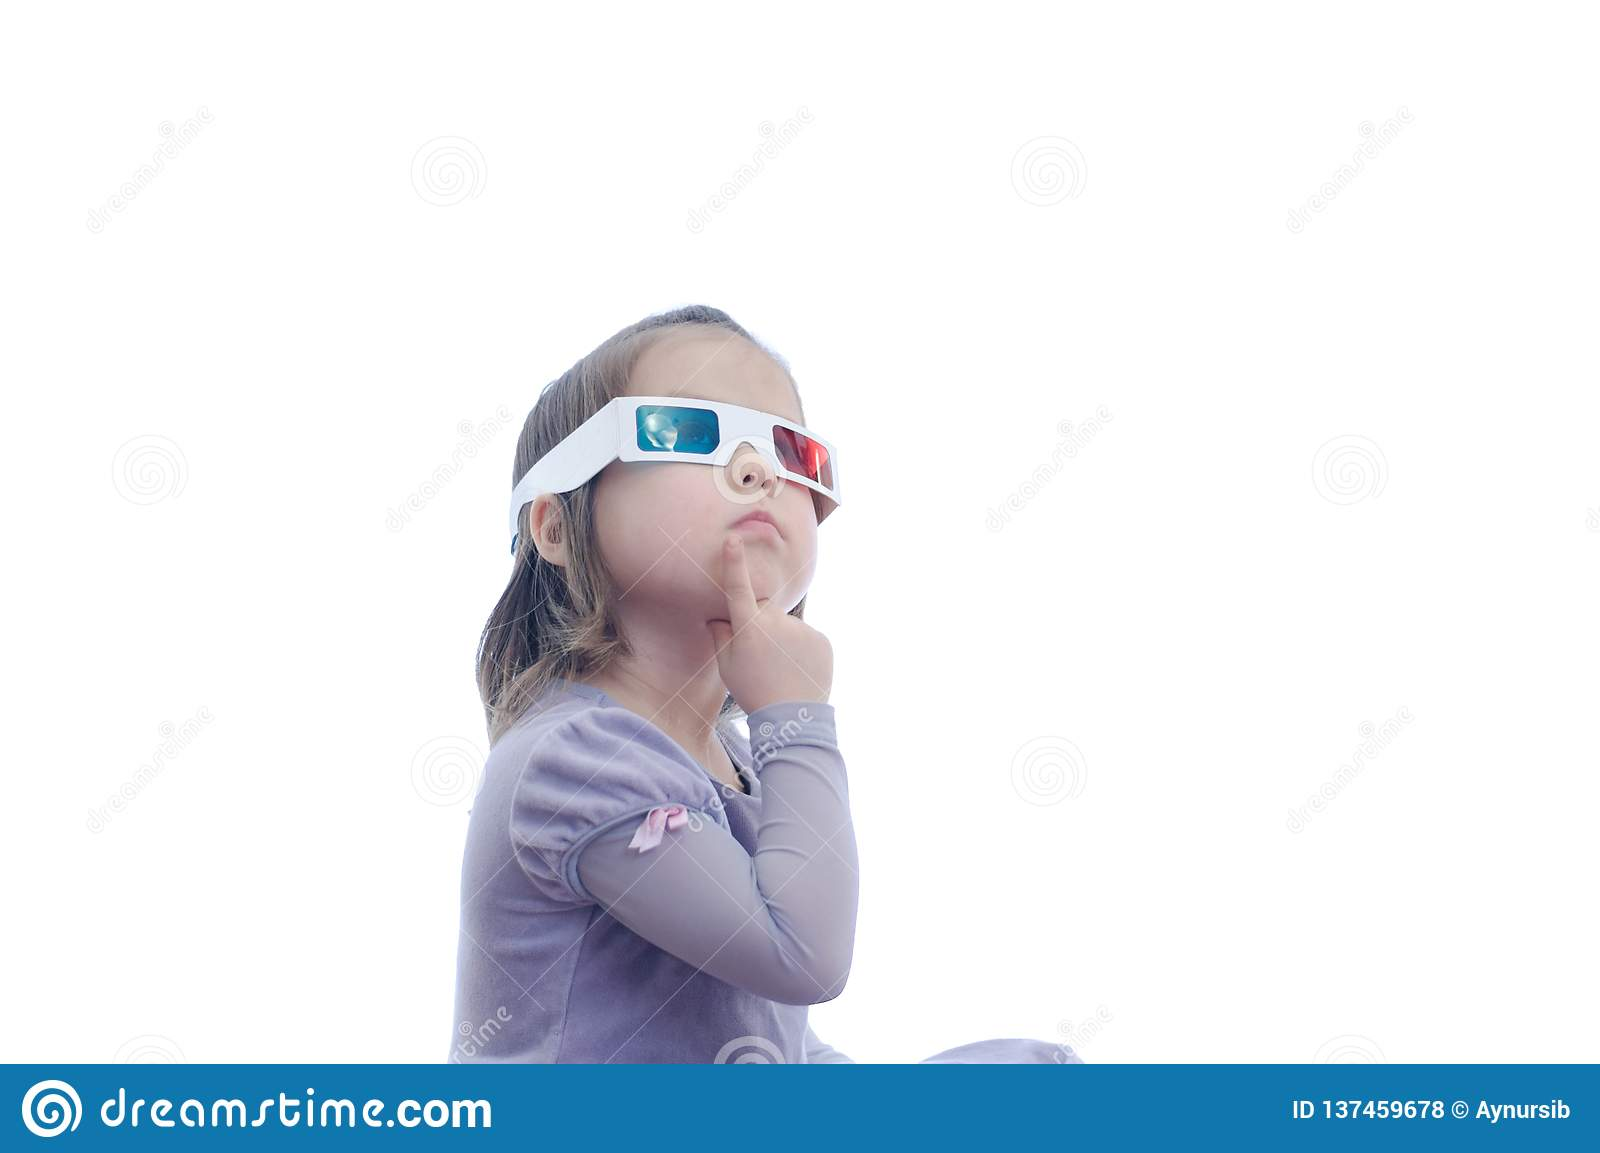 Thinking idea little baby girl in 3D anaglyph cinema glasses for stereo image system with polarization. 3D goggles wit